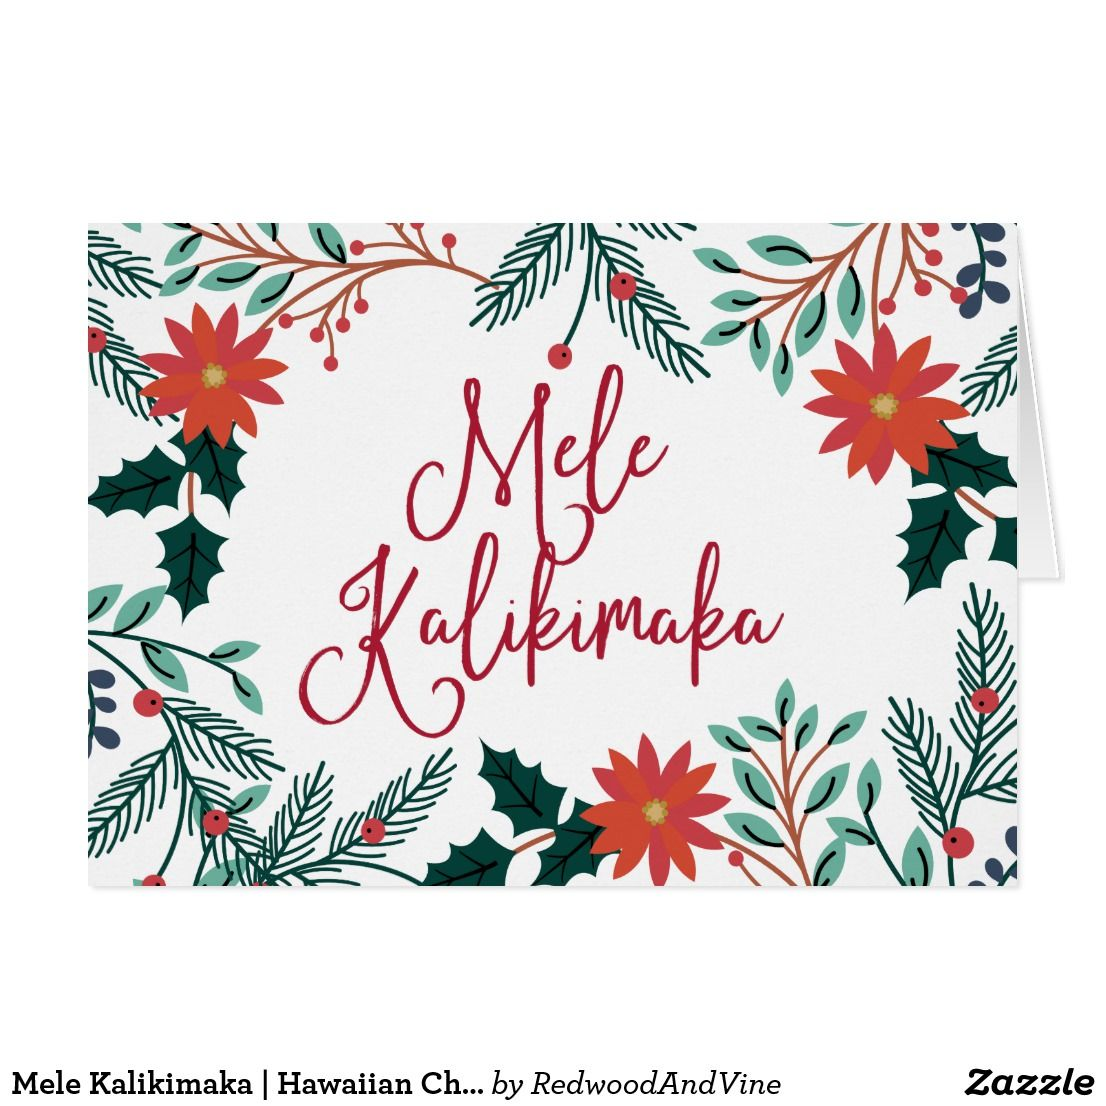 Mele Kalikimaka | Hawaiian Christmas Holiday Card | Mele Kalikimaka ...